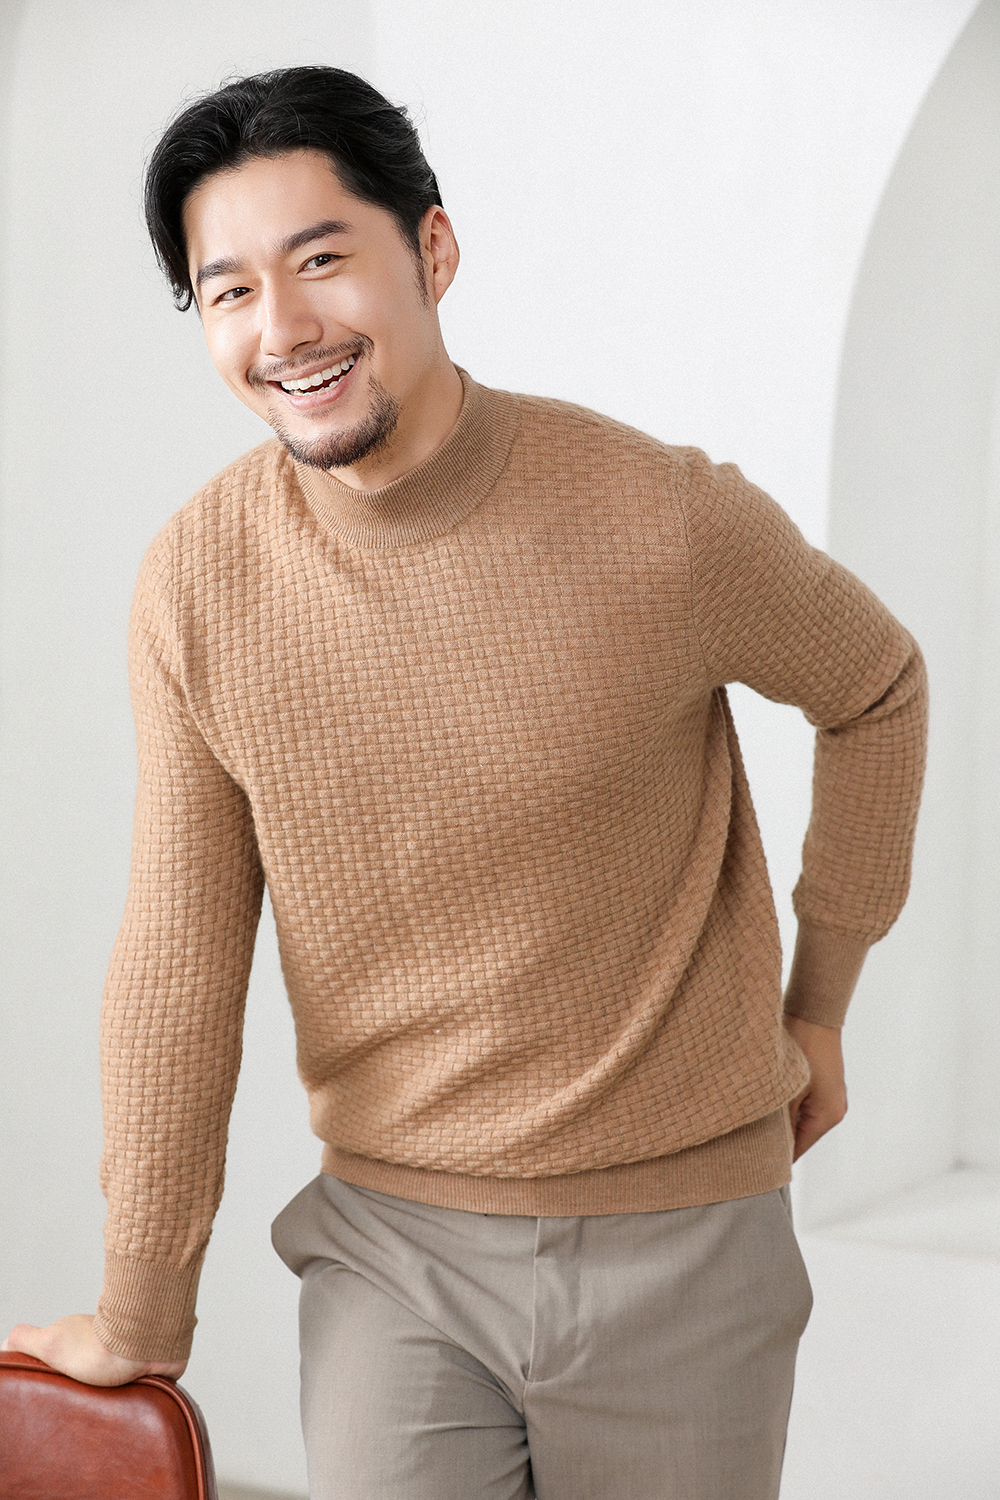 Cashmere Sweater Men's Young And Middle-aged Business Sweater Size Men's Casual Business Attire Padded Knit Base Shirt